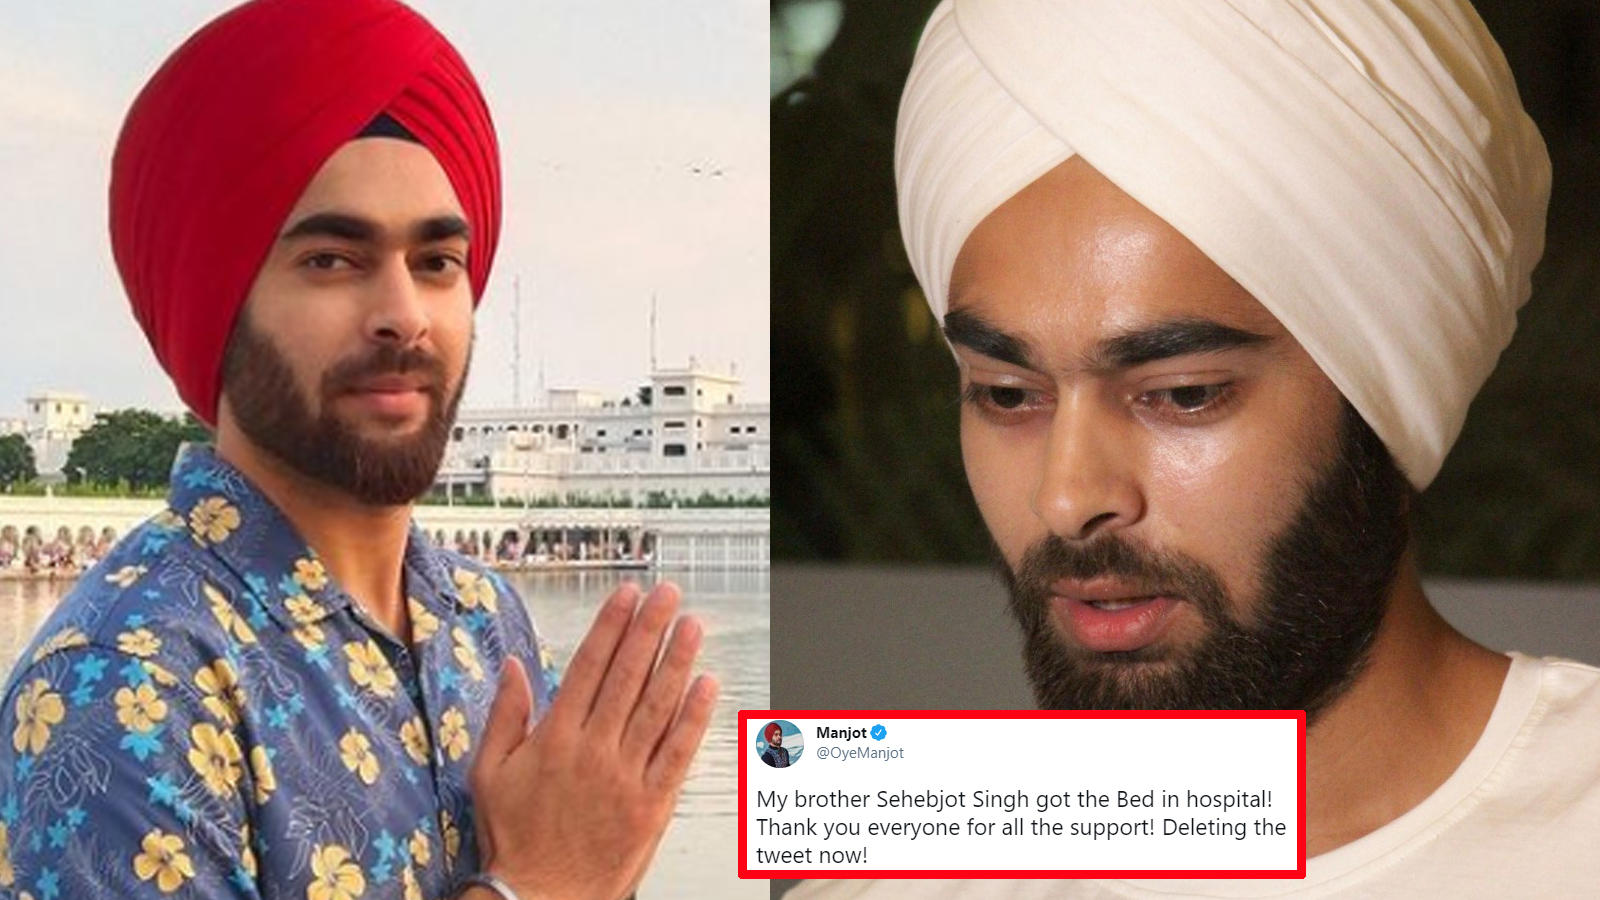 'Fukrey' actor Manjot Singh gets help from good samaritans on Twitter, finds an ICU bed for brother just in time | Hindi Movie News – Bollywood – Times of India